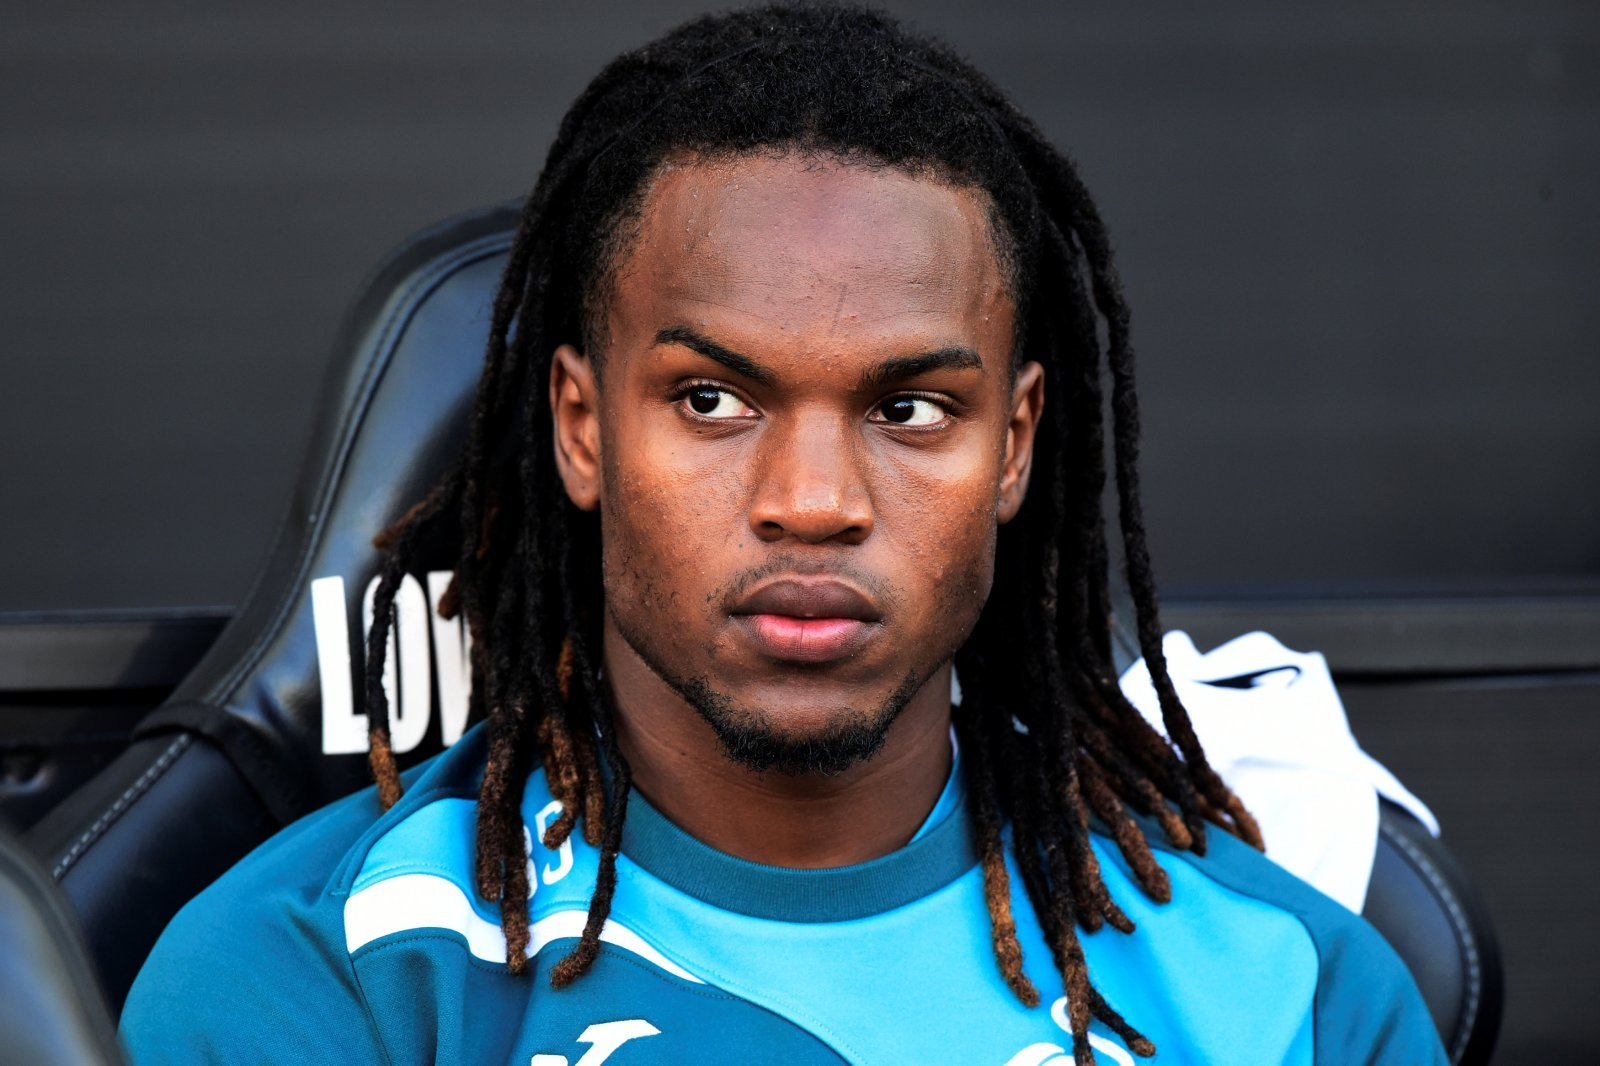 Renato Sanches could be an unlikely replacement for Oxlade-Chamberlain next season